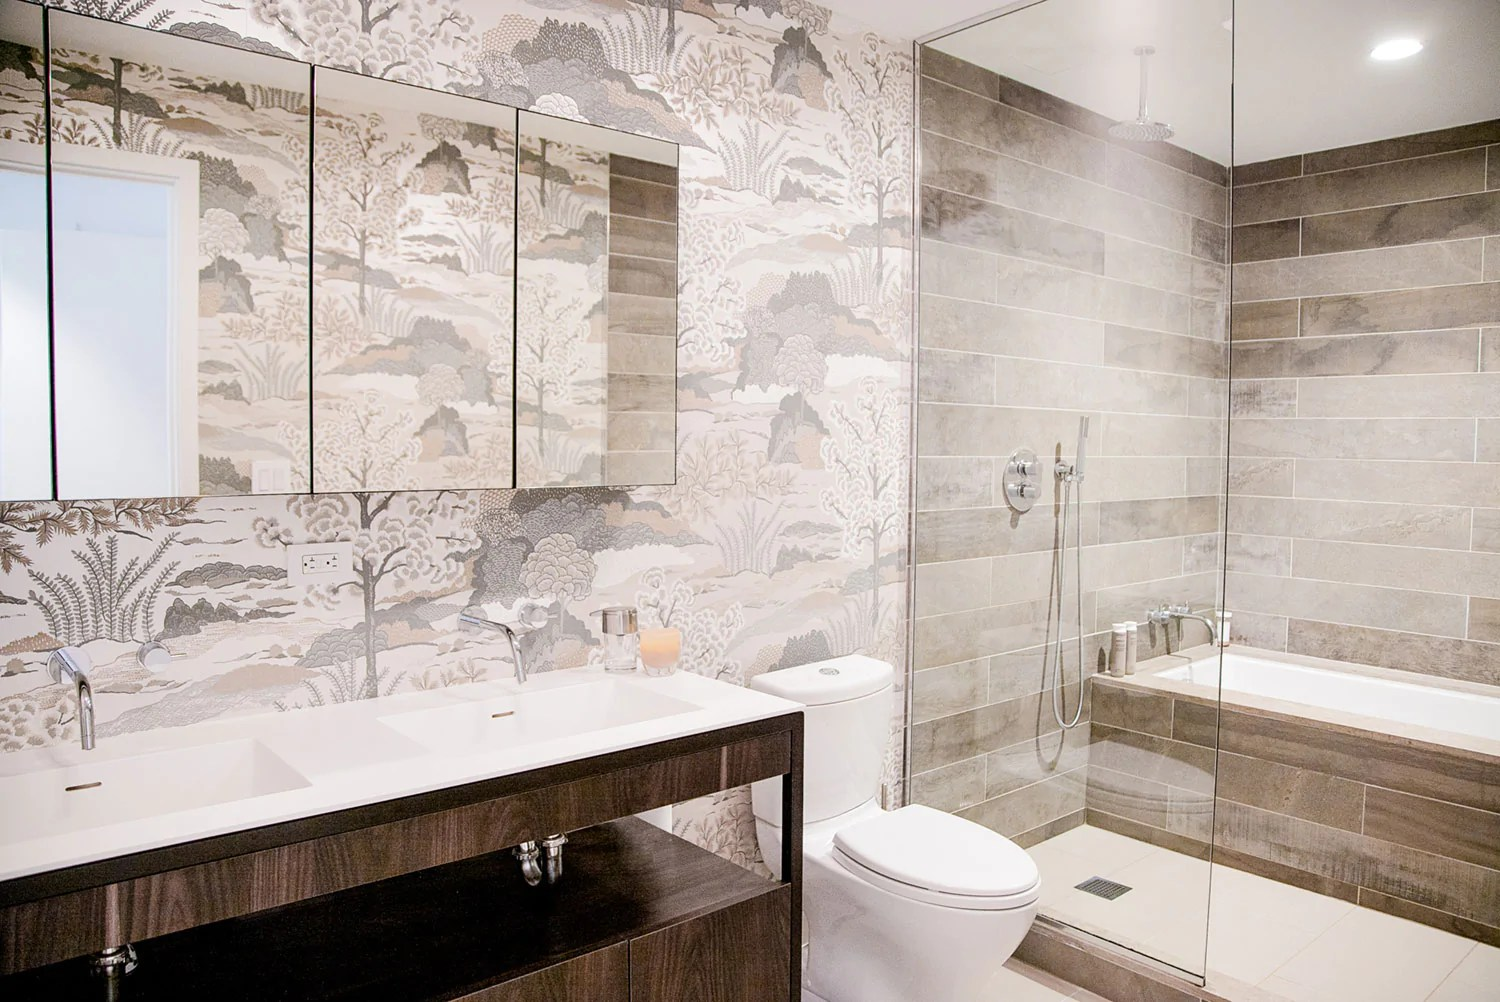 Bathroom Home Interior Design Red Hook Brooklyn Nyc Nj Interior Design Global Home